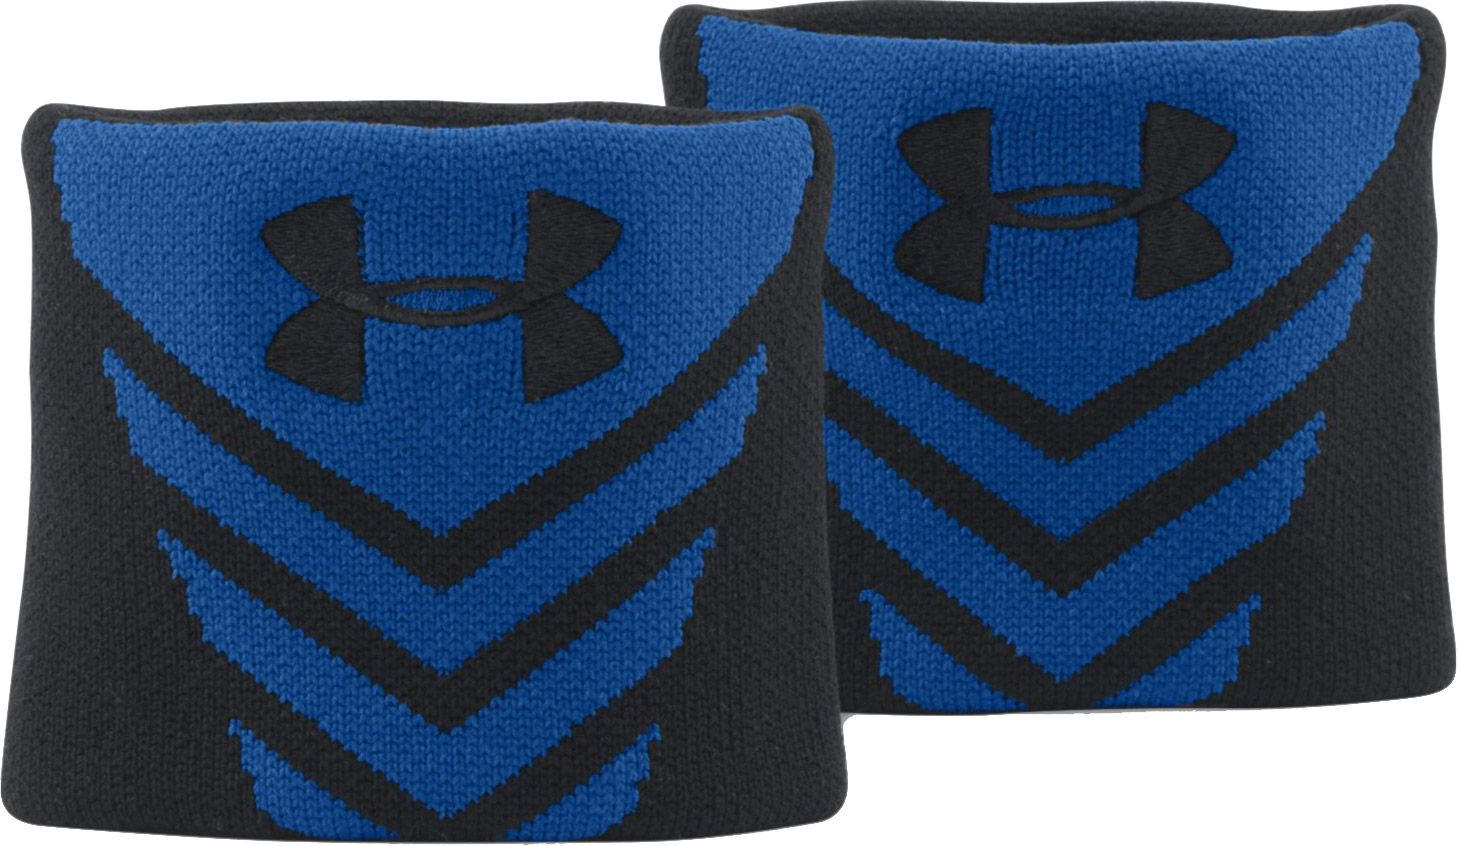 Under Armour Undeniable Wristbands DICKS Sporting Goods